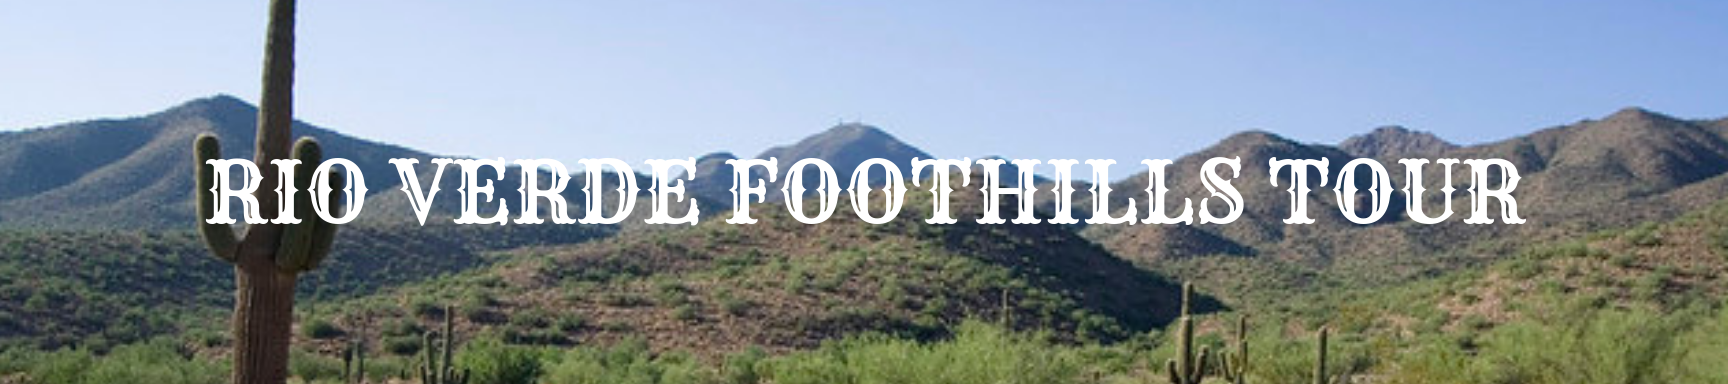 rio verde foothills tour.png